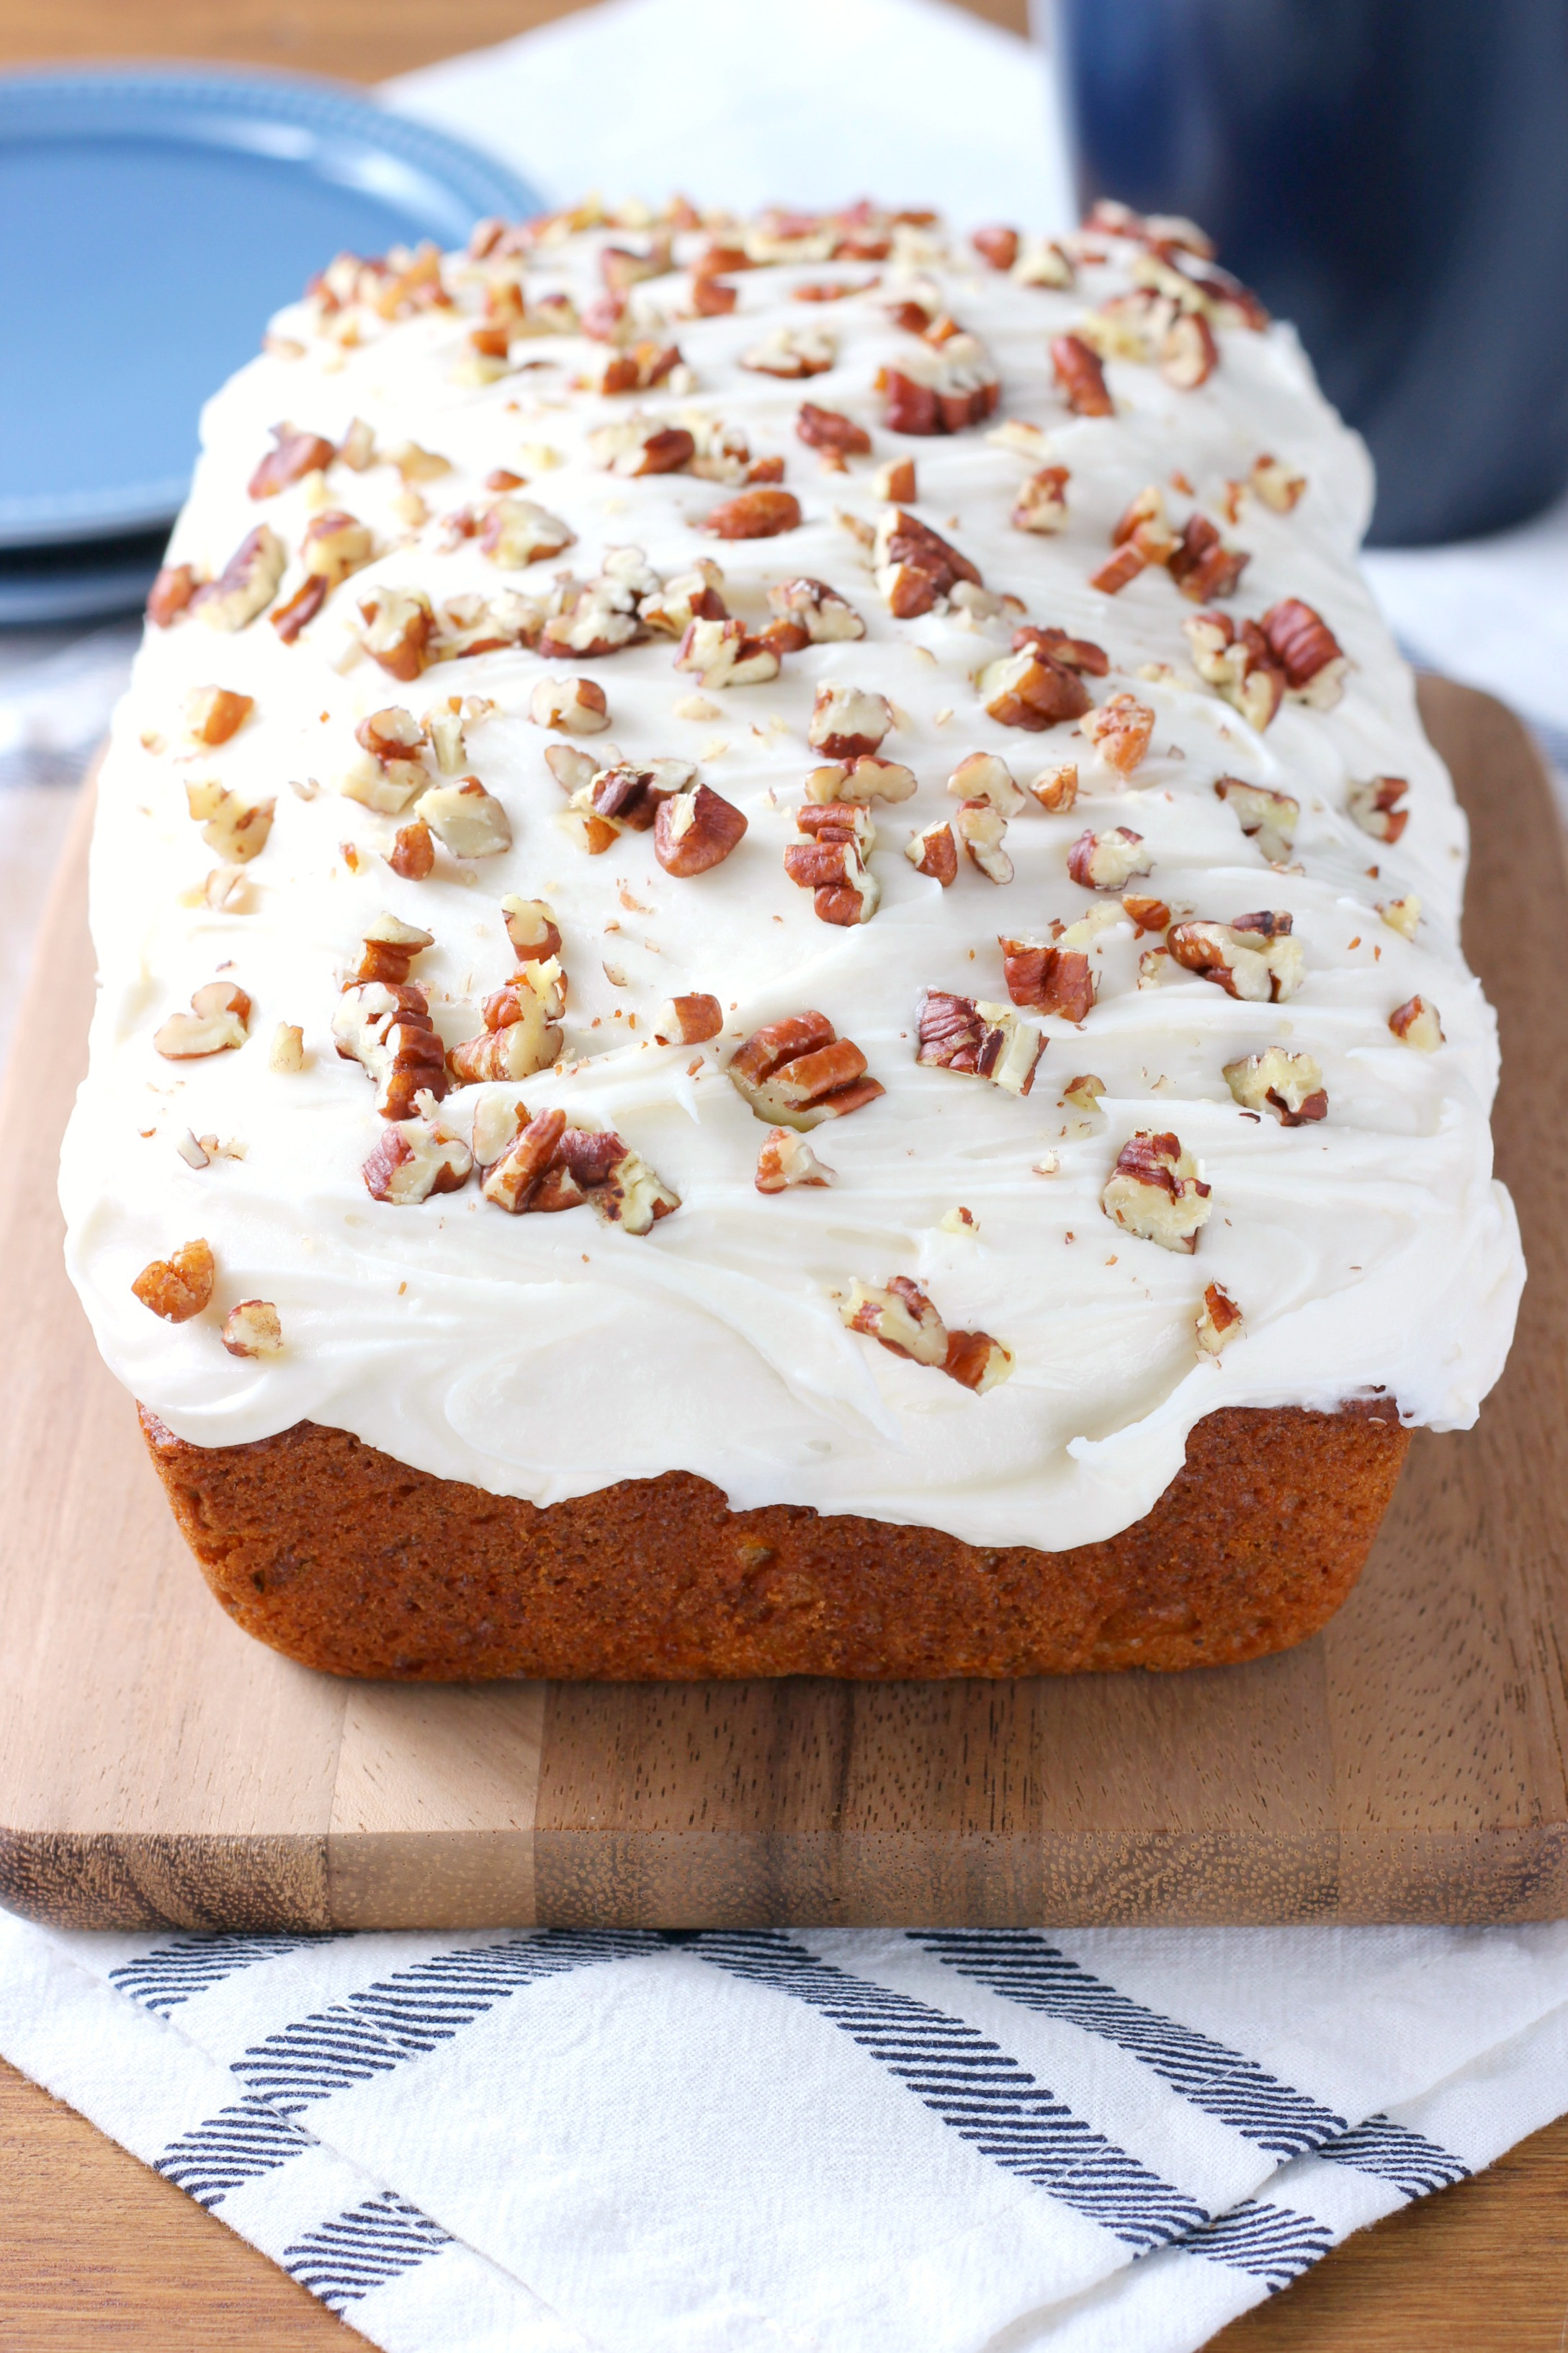 Carrot Cake Bread  Zucchini Carrot Cake Bread with Cream Cheese Frosting